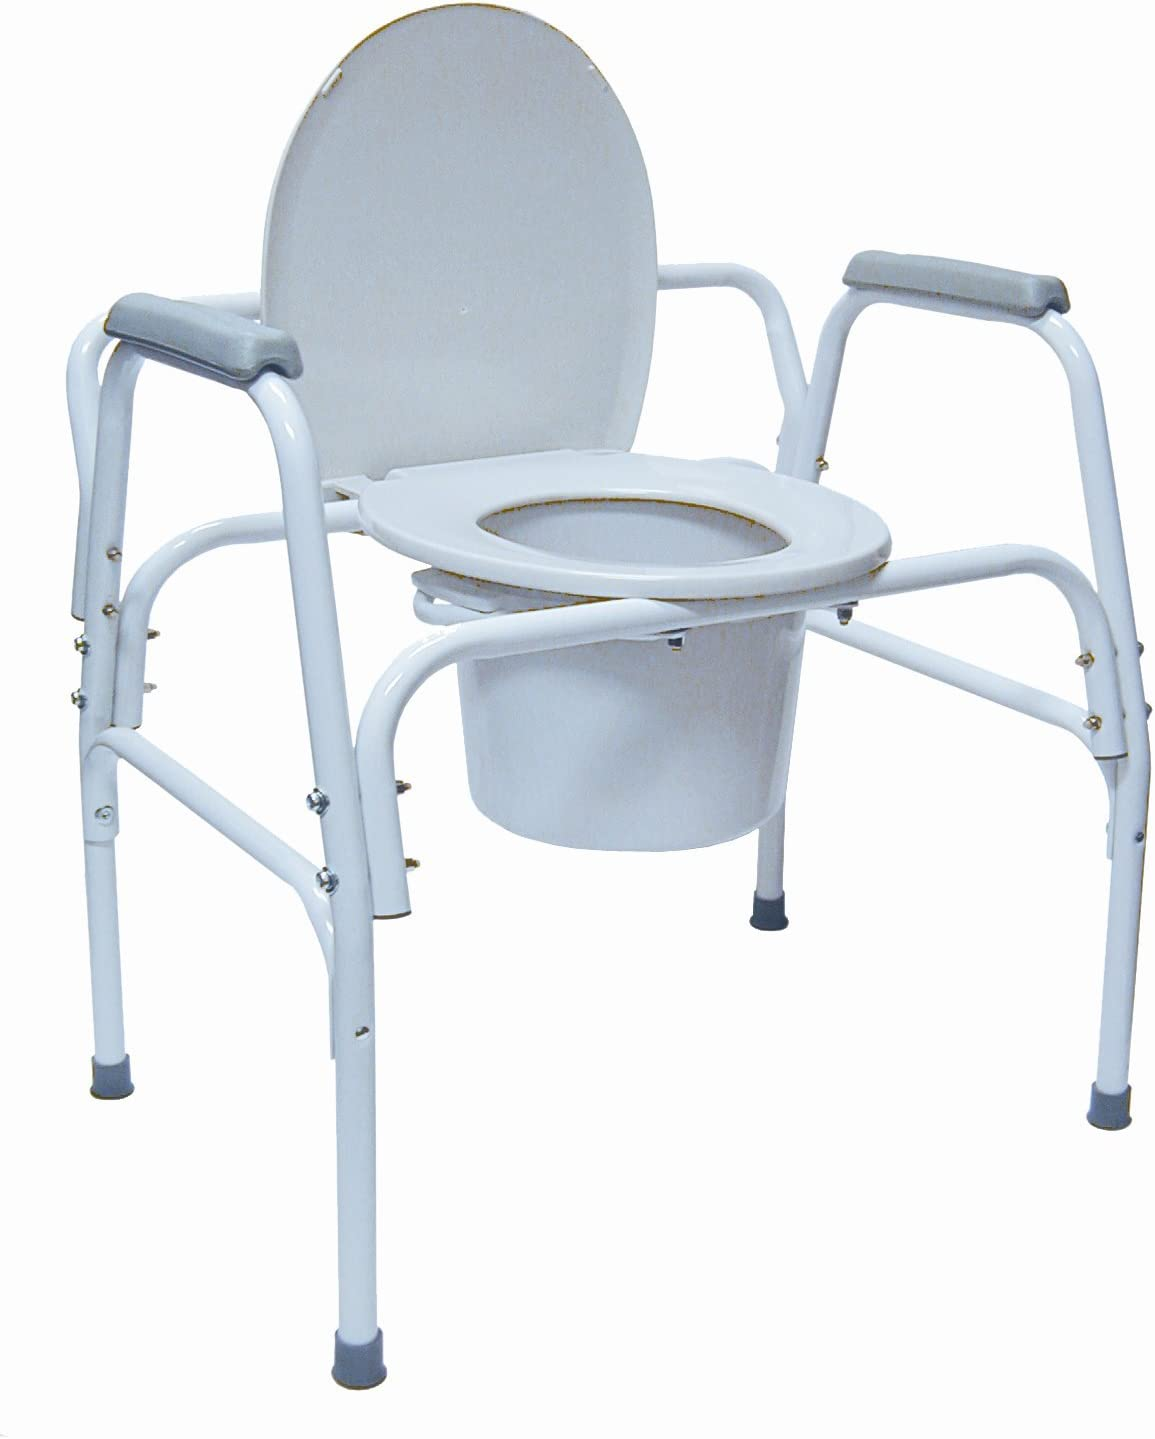 B000EXA4RC Duro-Med Bariatric Steel Commode with Assist Bars, Gray 61wFhXh4hML.SL1500_